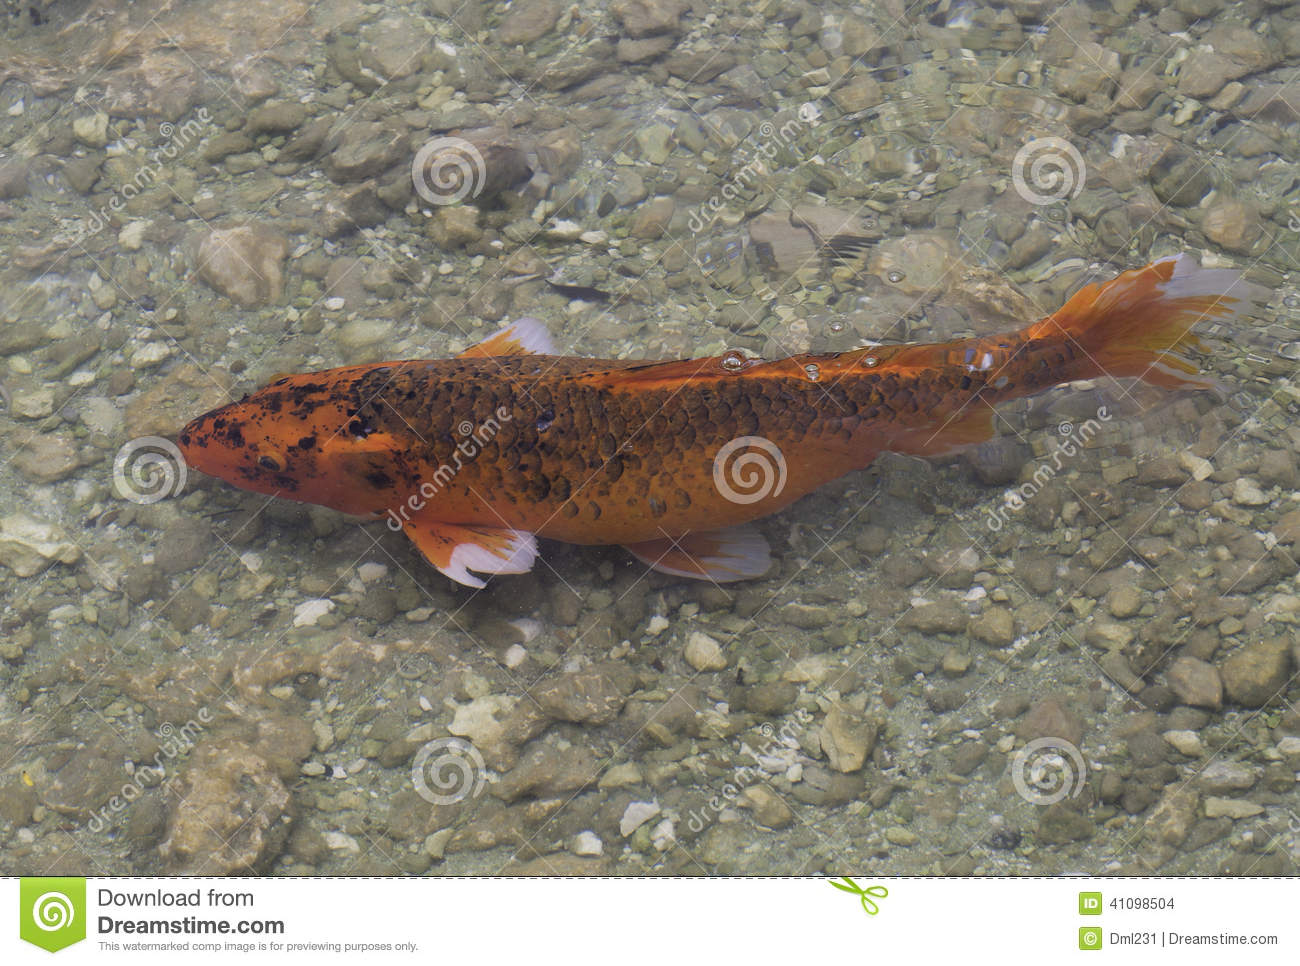 Koi fish swimming in rocky pond stock photo image 41098504 for All black koi fish